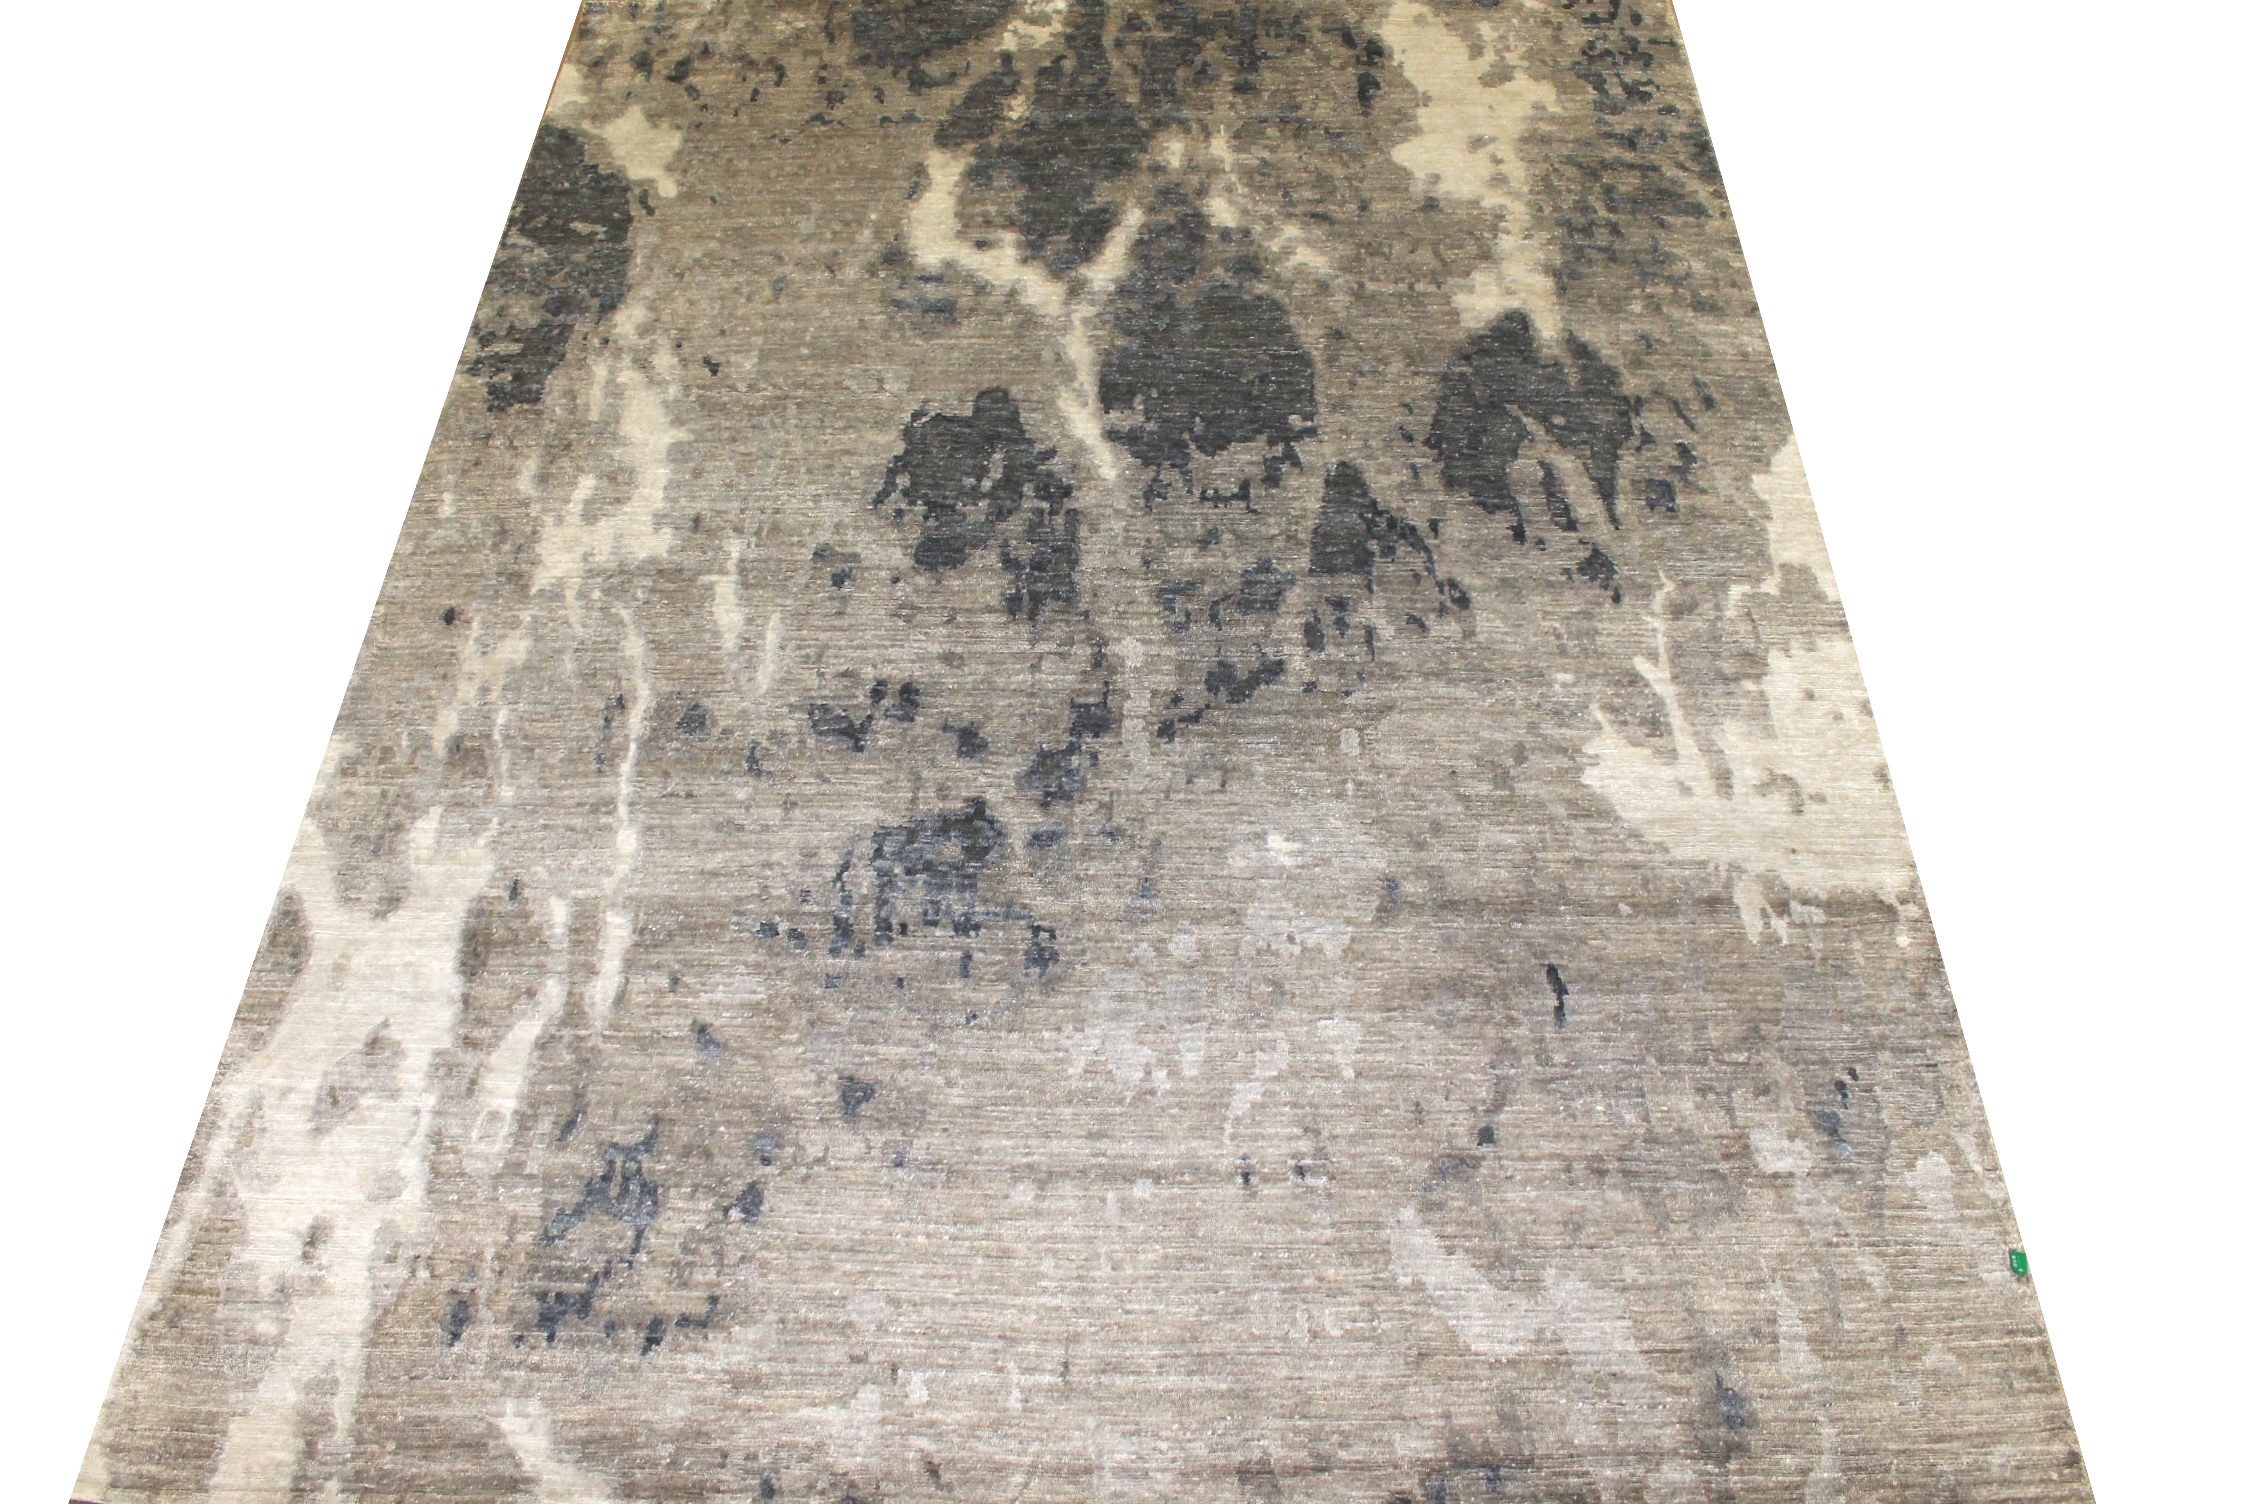 9x12 Modern Hand Knotted Wool & Bamboo Silk Area Rug - MR024887